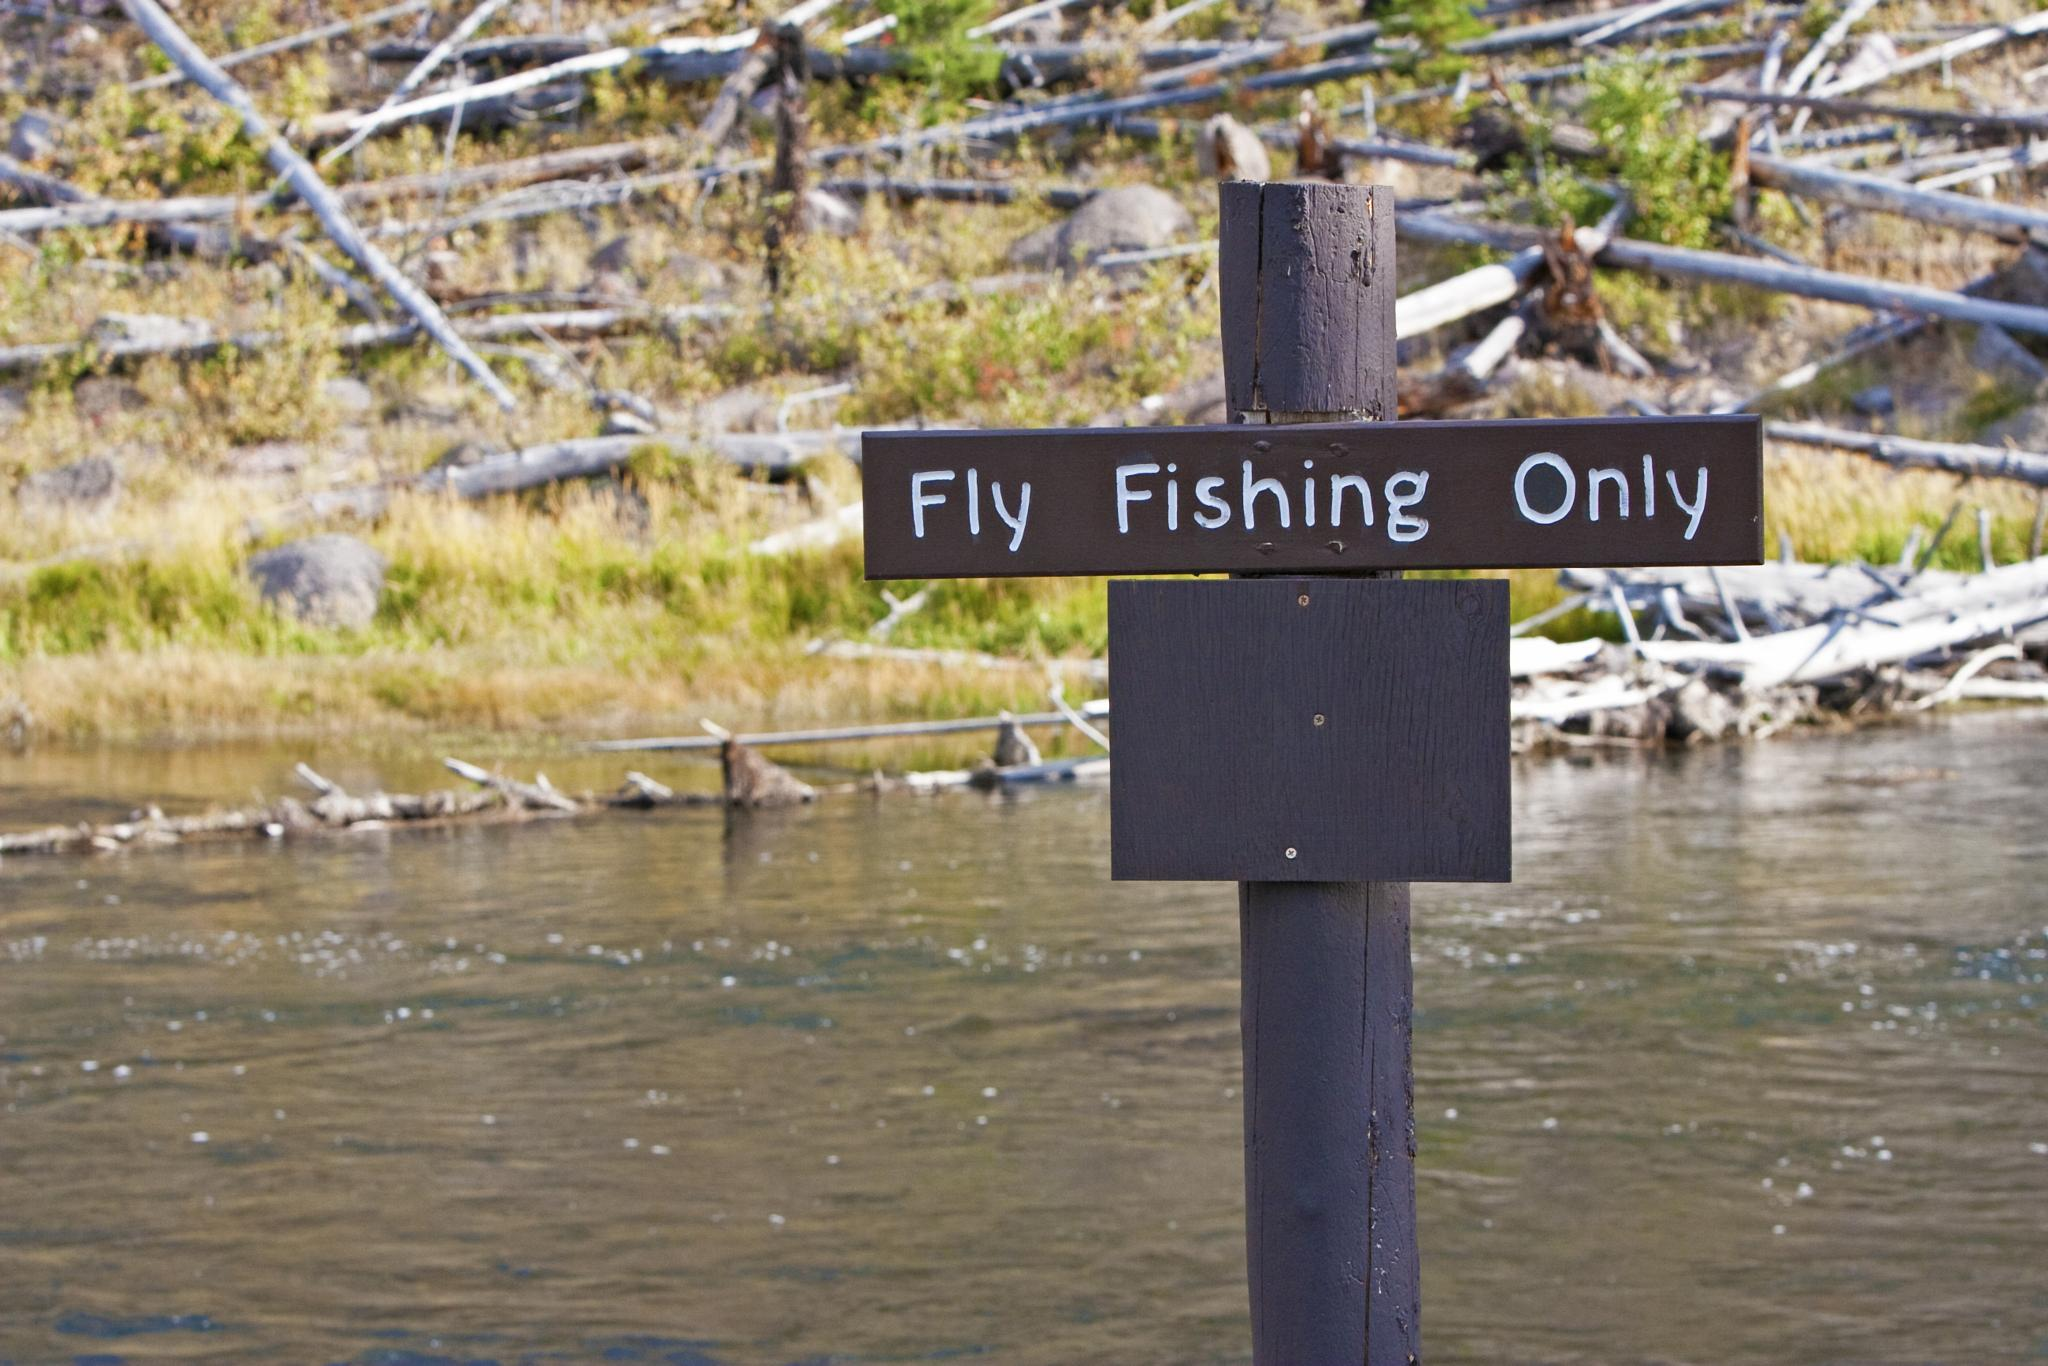 Fly Fishing Only - Yellowstone by Steve Ohlsen